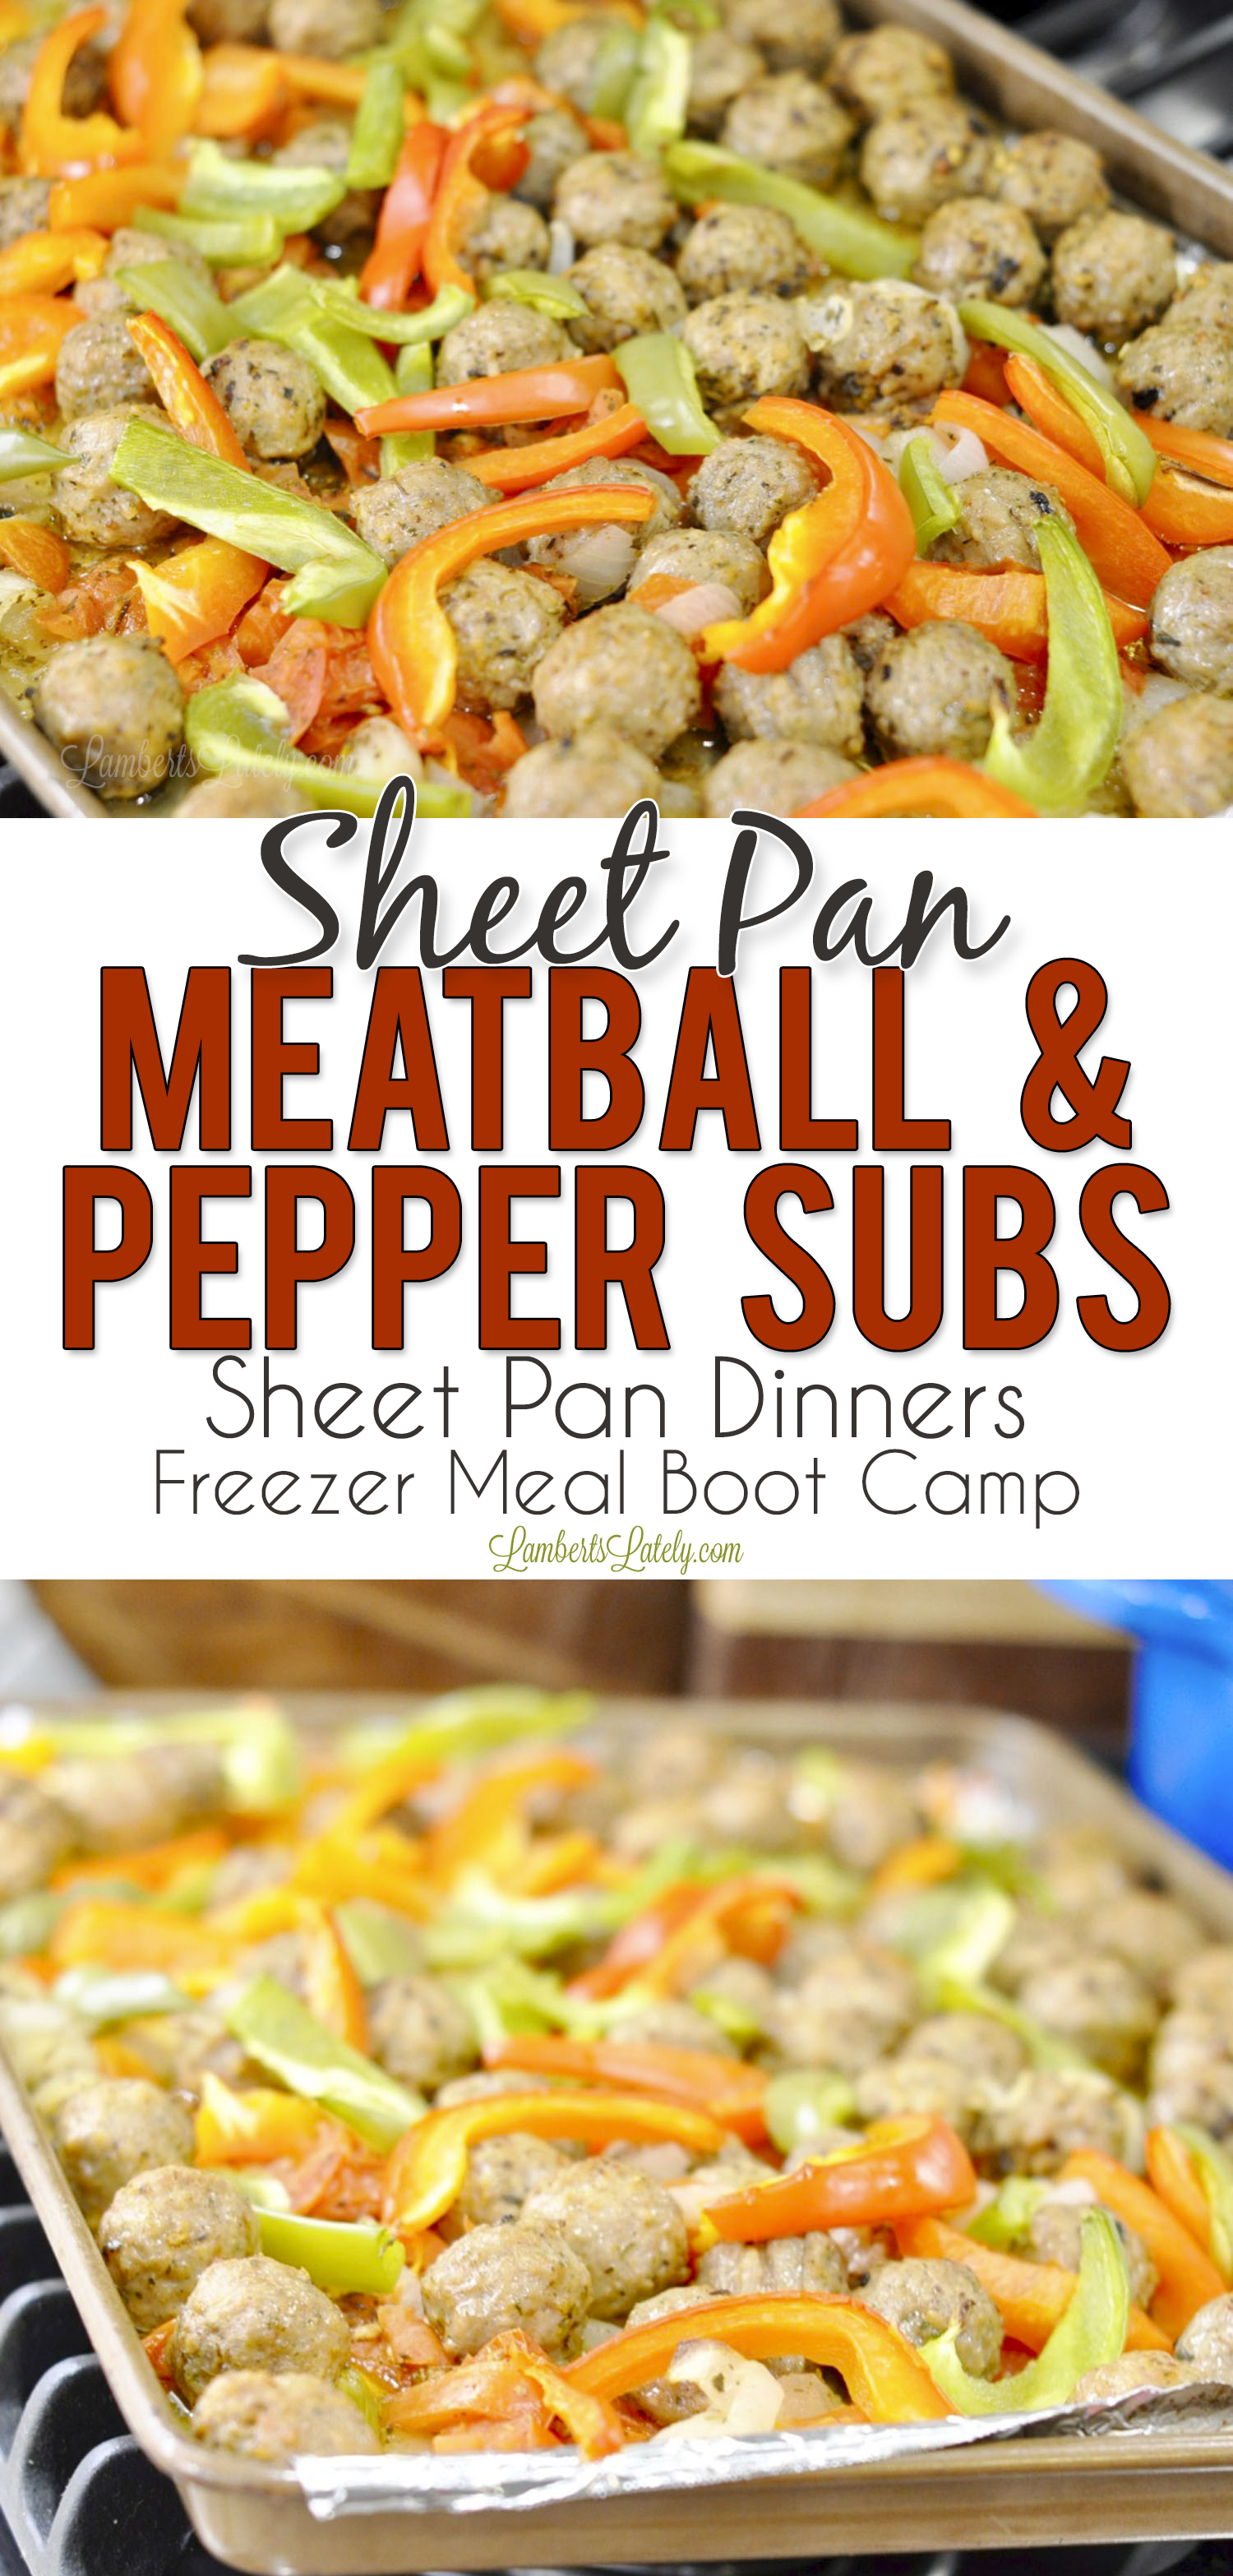 Sheet Pan Meatball & Pepper Subs proves that roasting a sheet pan meal in the oven can still be moist and flavorful! Sheet pan dinners are such easy meals - they make for easy weeknight freezer meals too!